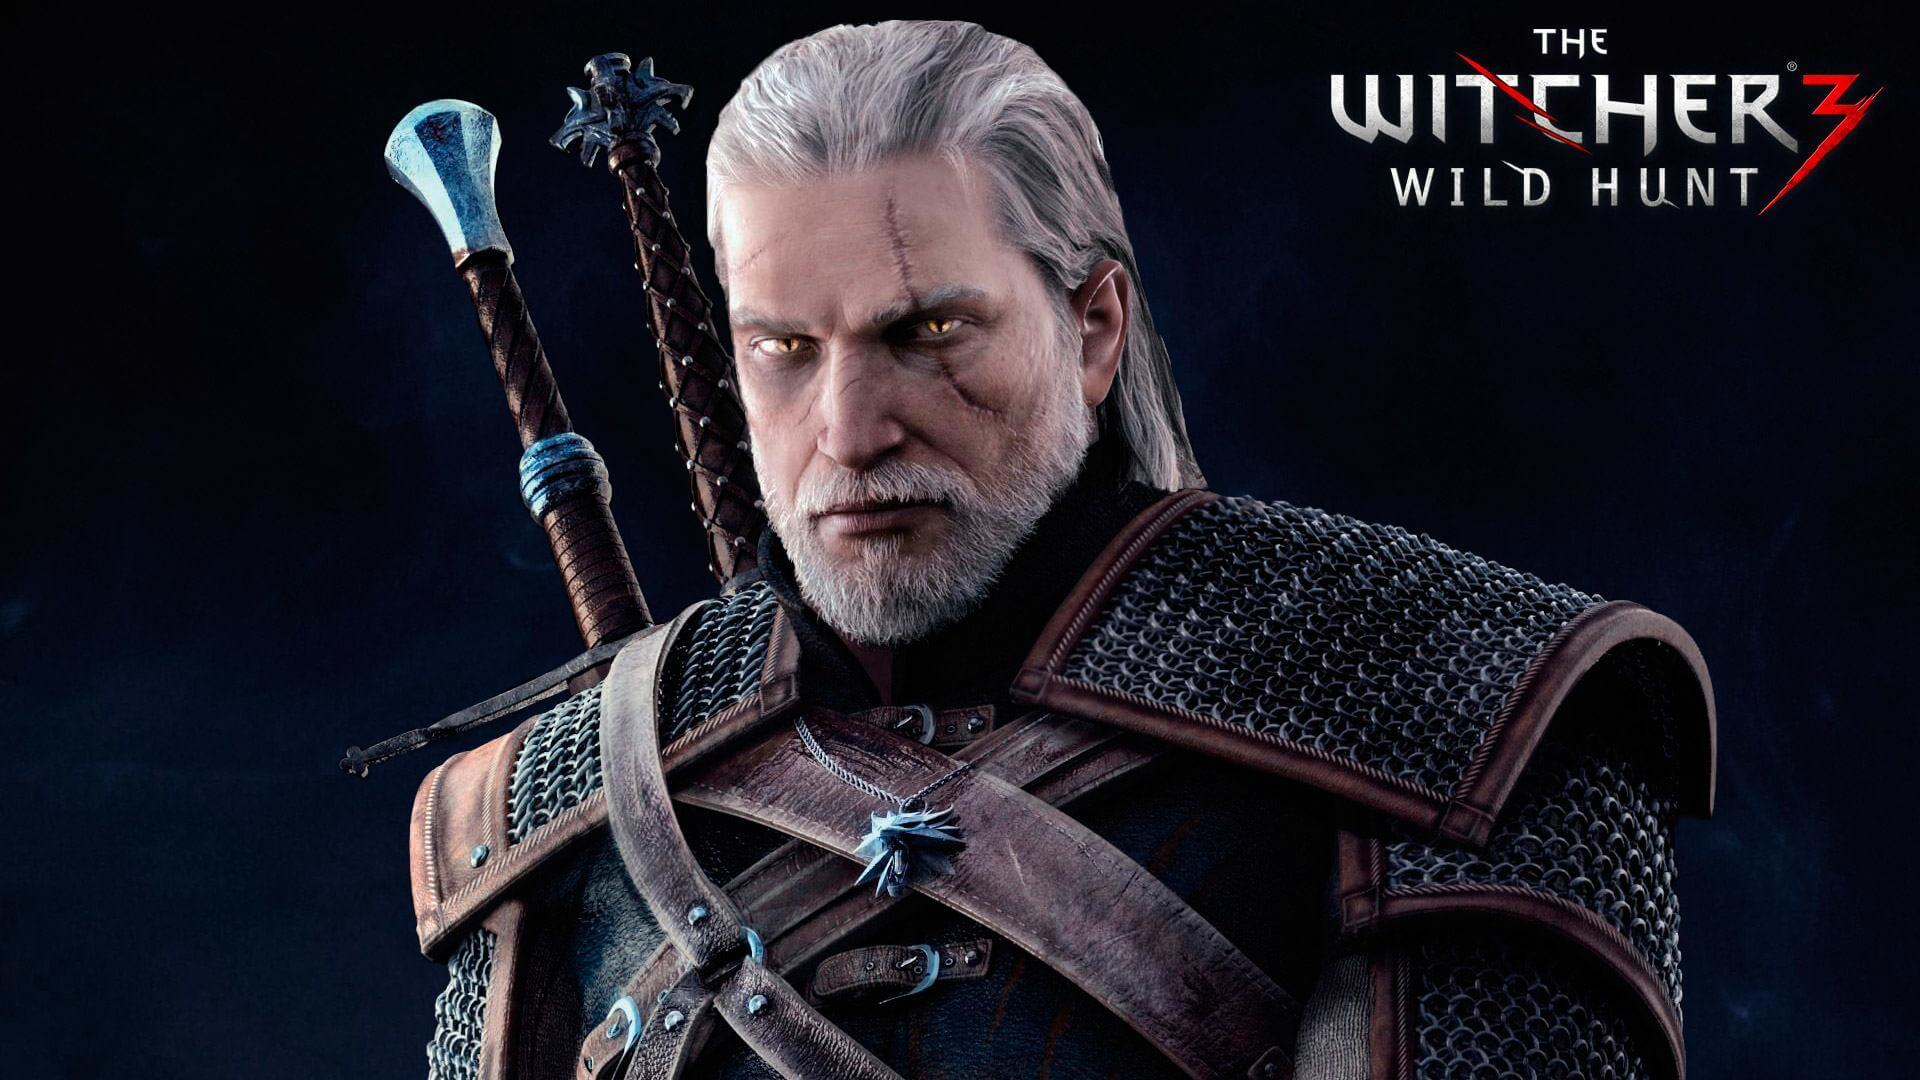 The-Witcher-3-Wild-Hunt-Main-Character-Geralt-of-Rivia-HD-Wallpaper